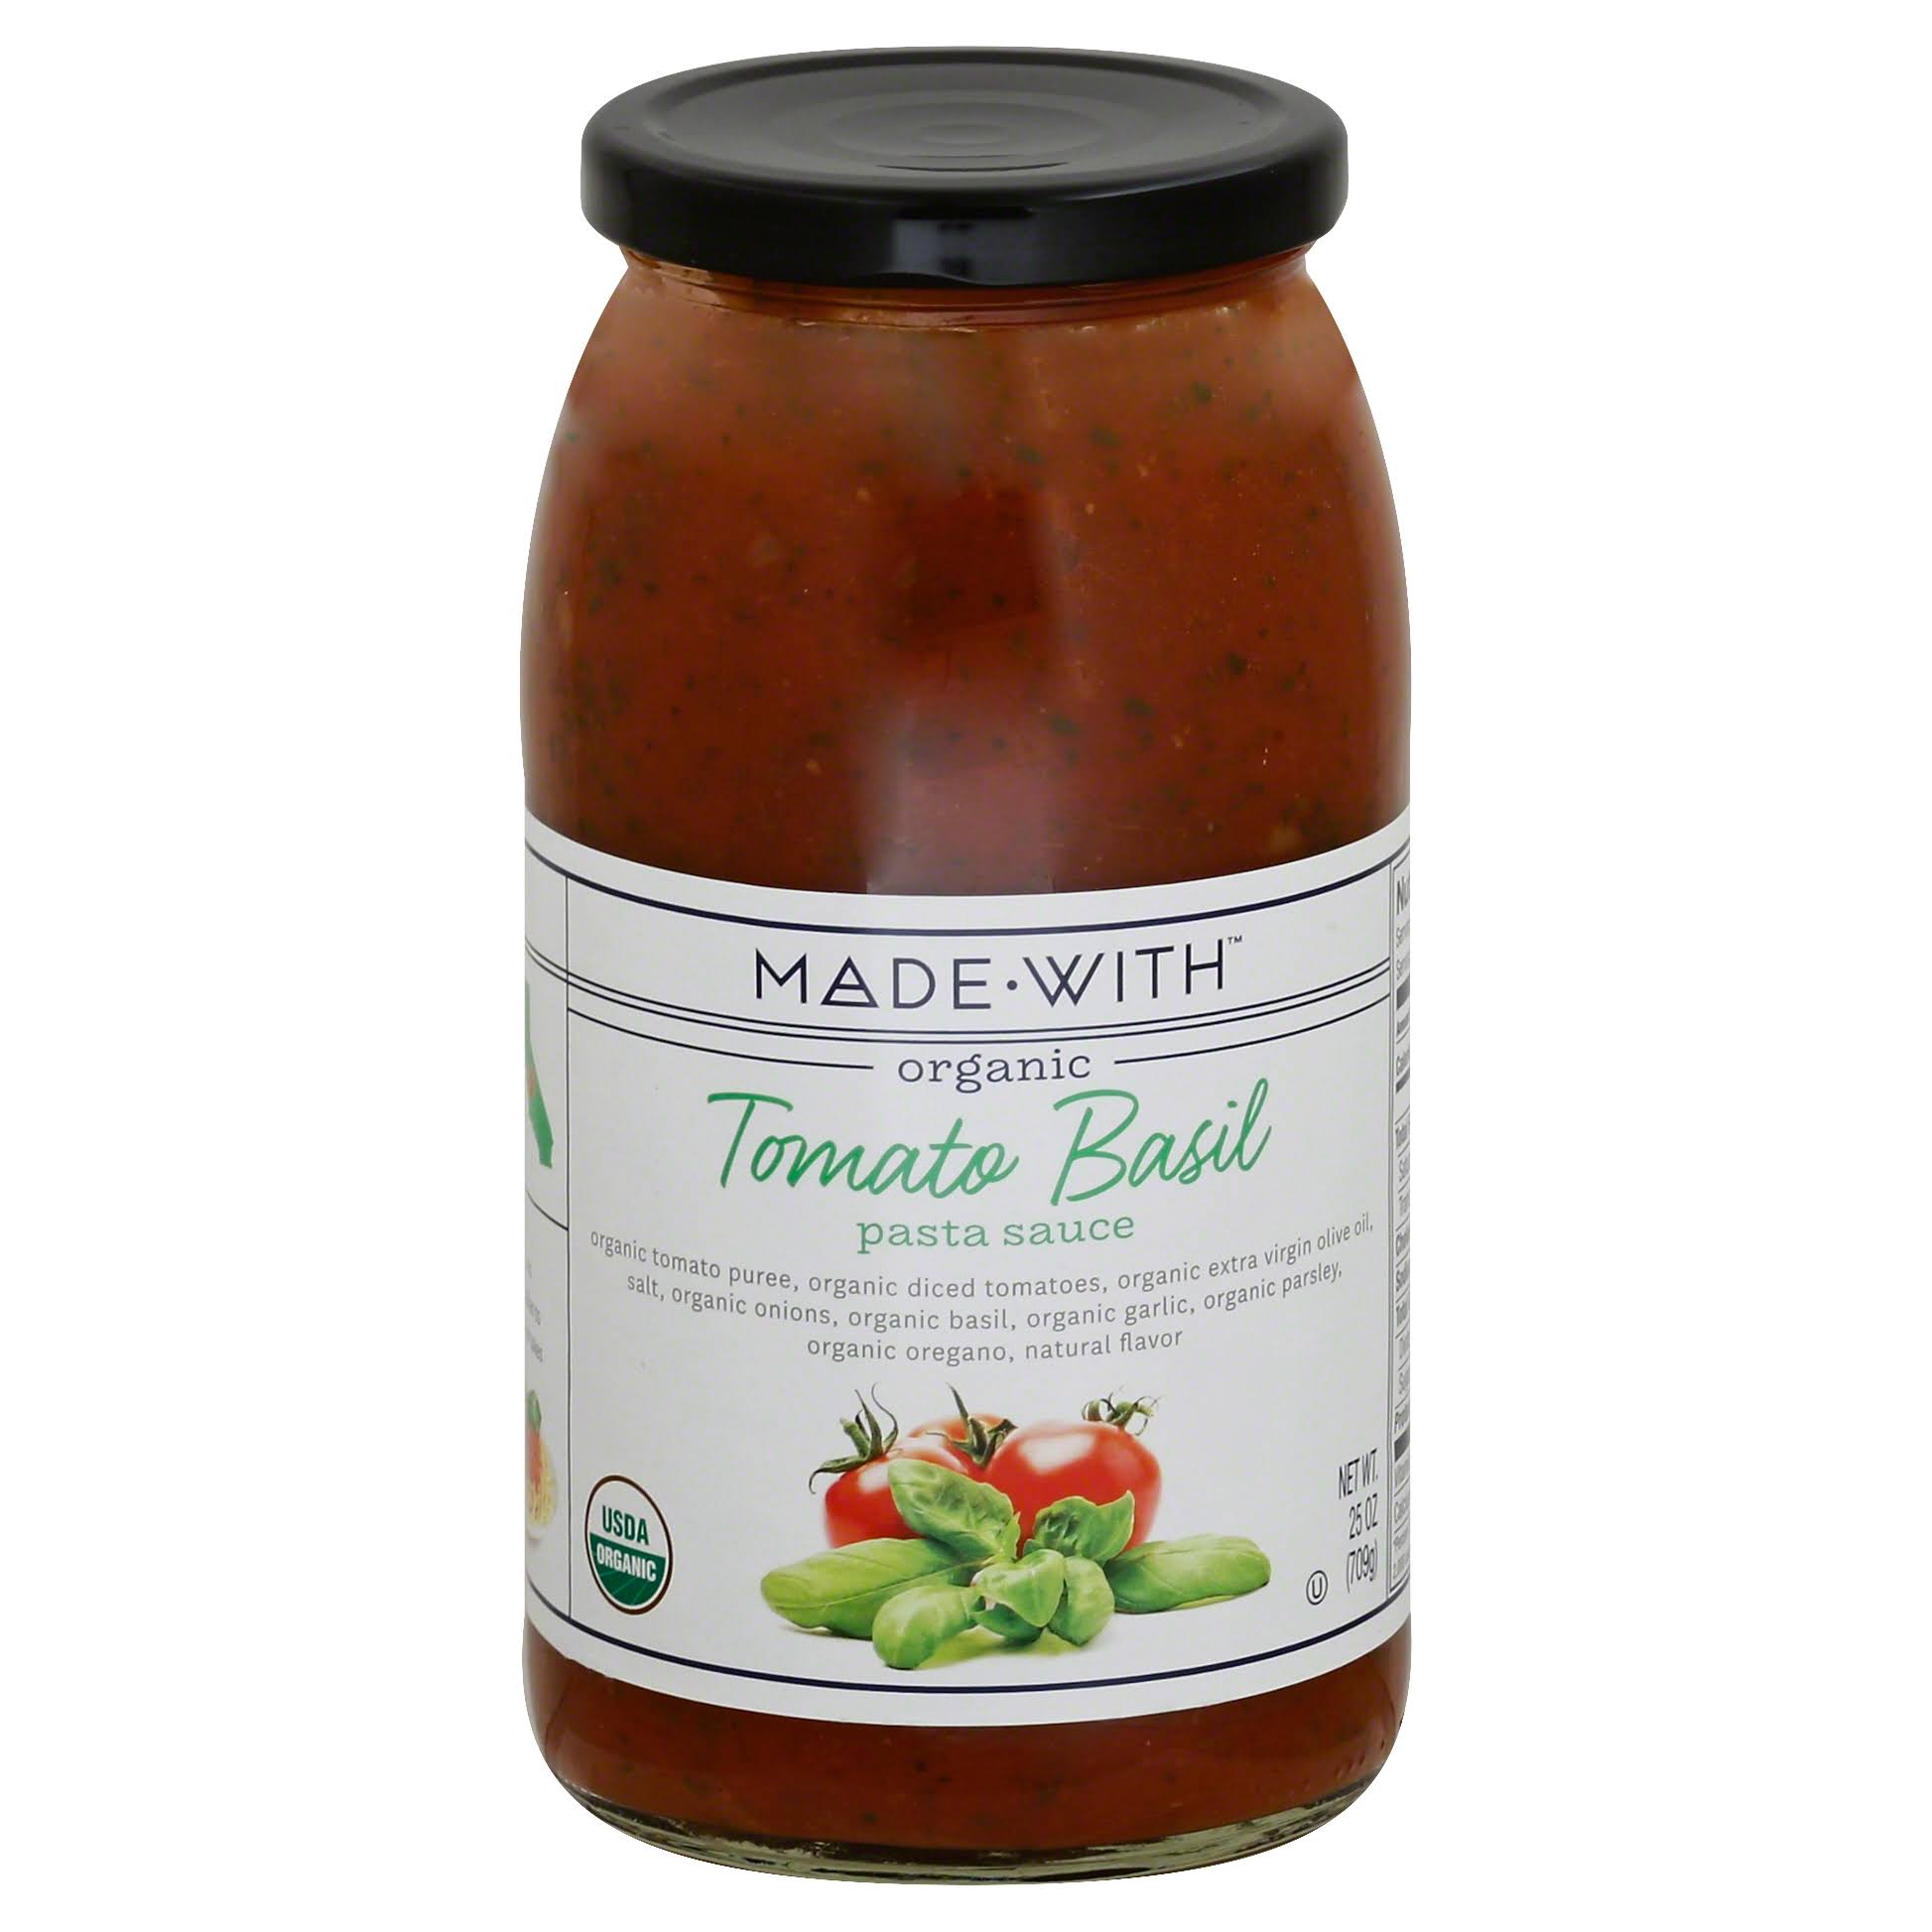 Made With Organic Pasta Sauce - Tomato Basil, 25oz